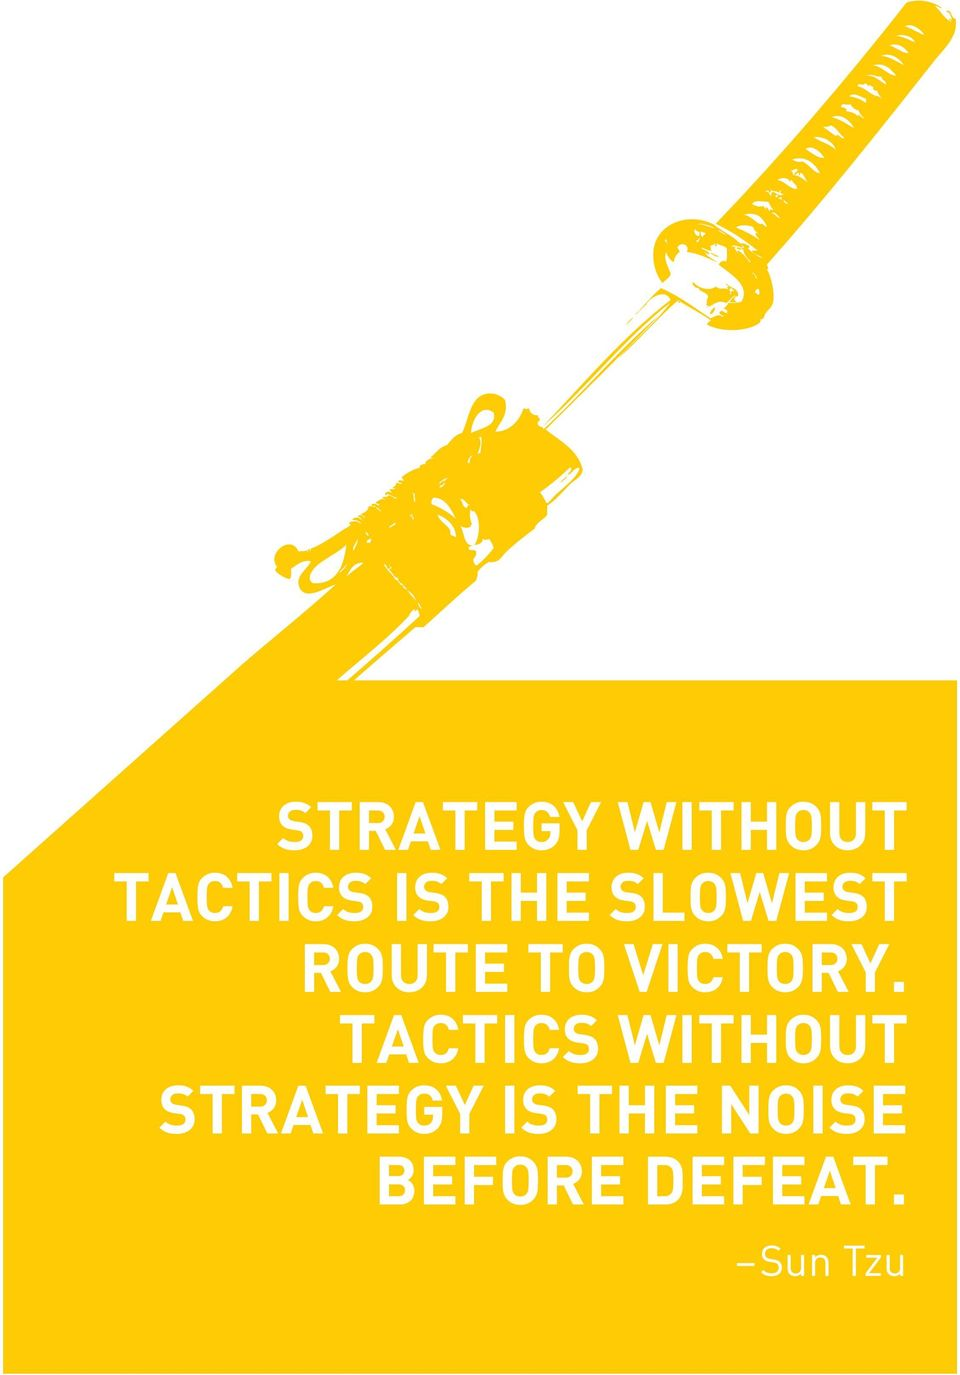 TACTICS WITHOUT STRATEGY IS